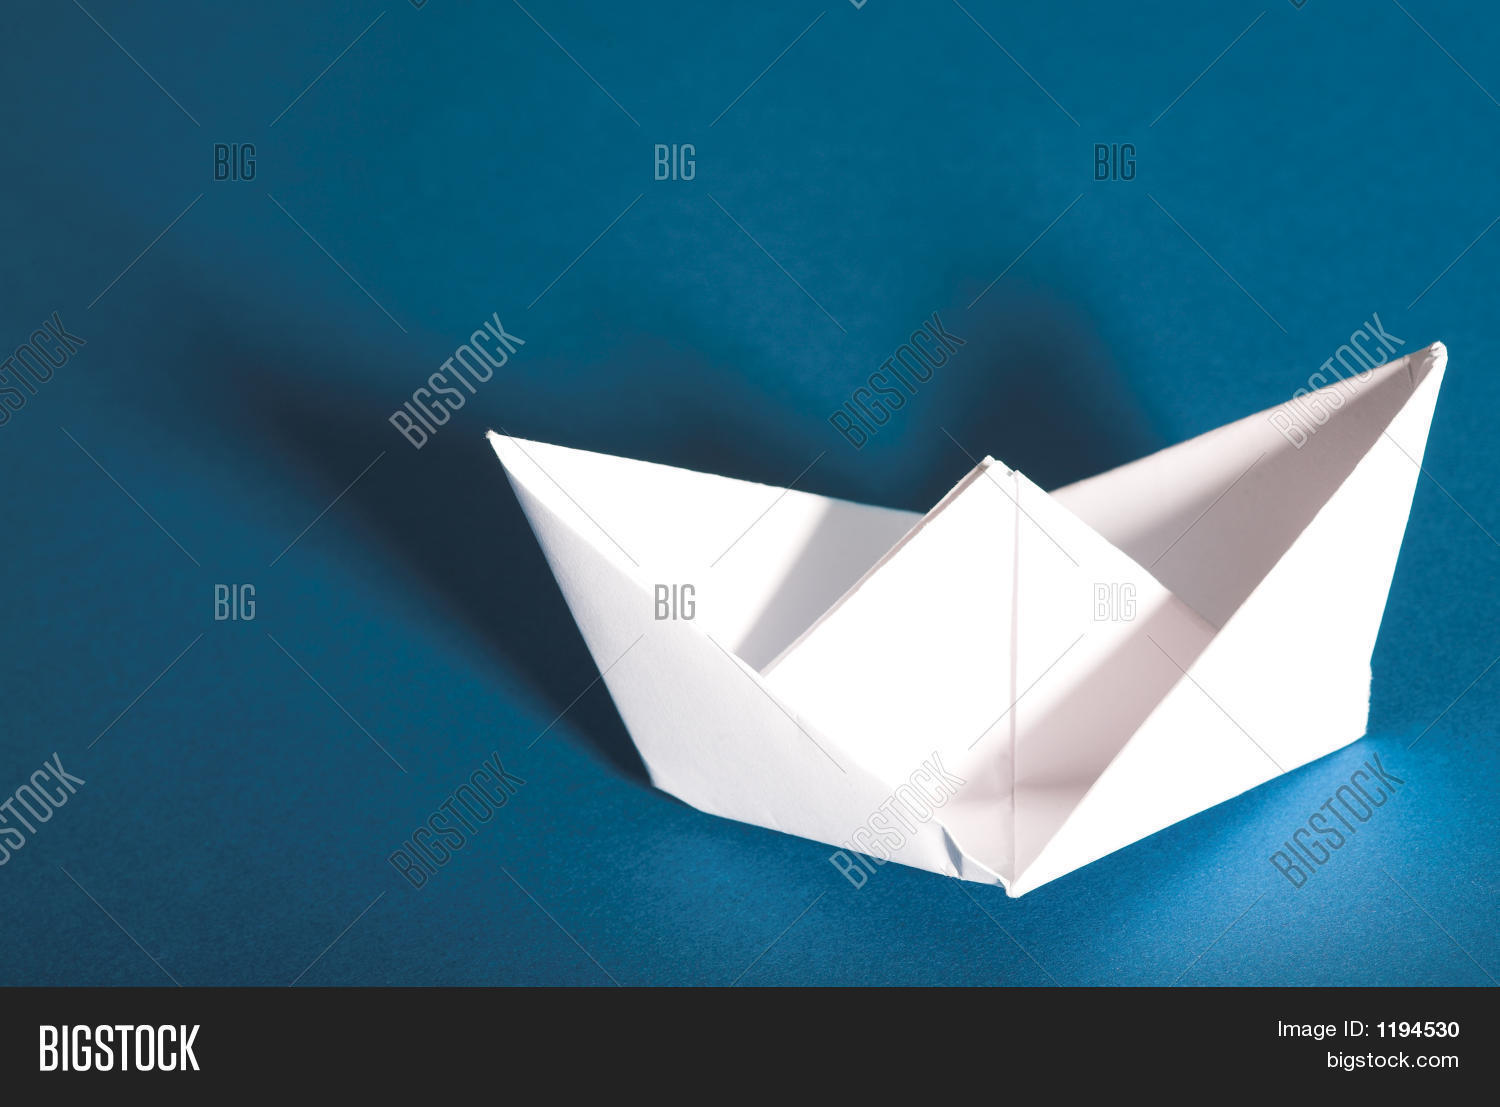 How To Make A Simple Origami Boat That Floats (HD) - YouTube | 1107x1500